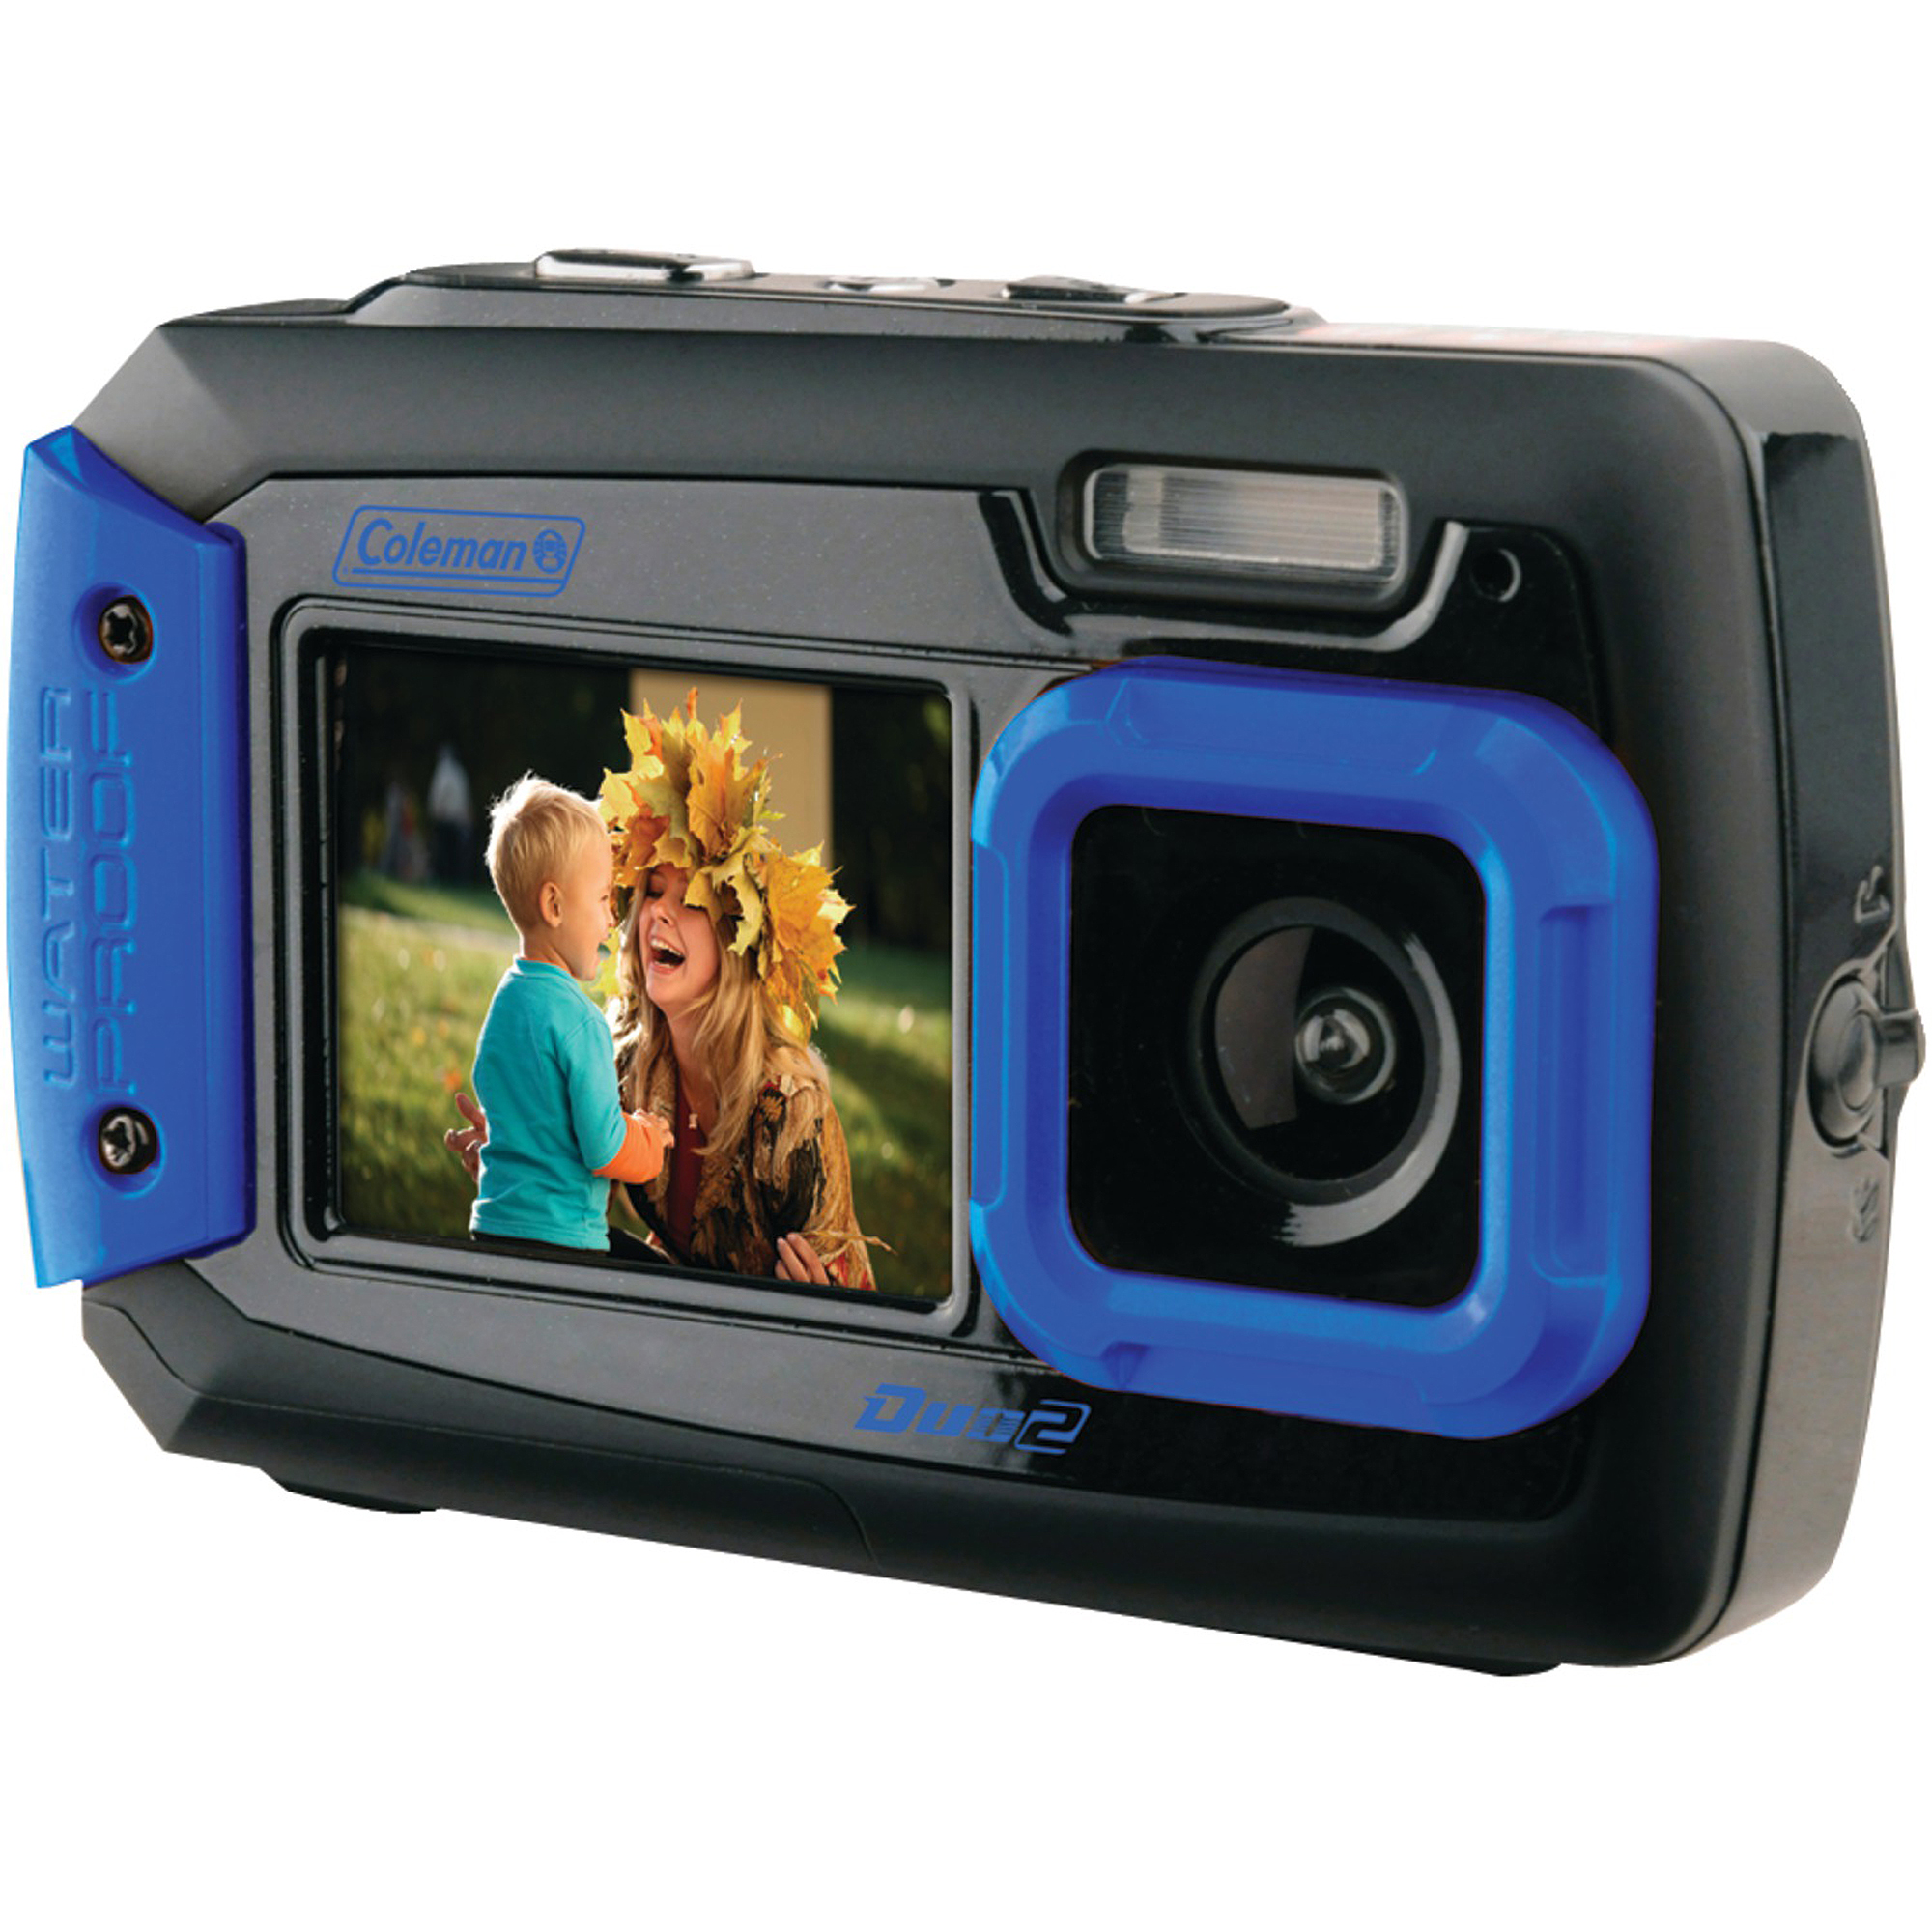 Coleman 2V9WP Duo2 Dual-Screen Waterproof 20MP Digital Camera, Blue